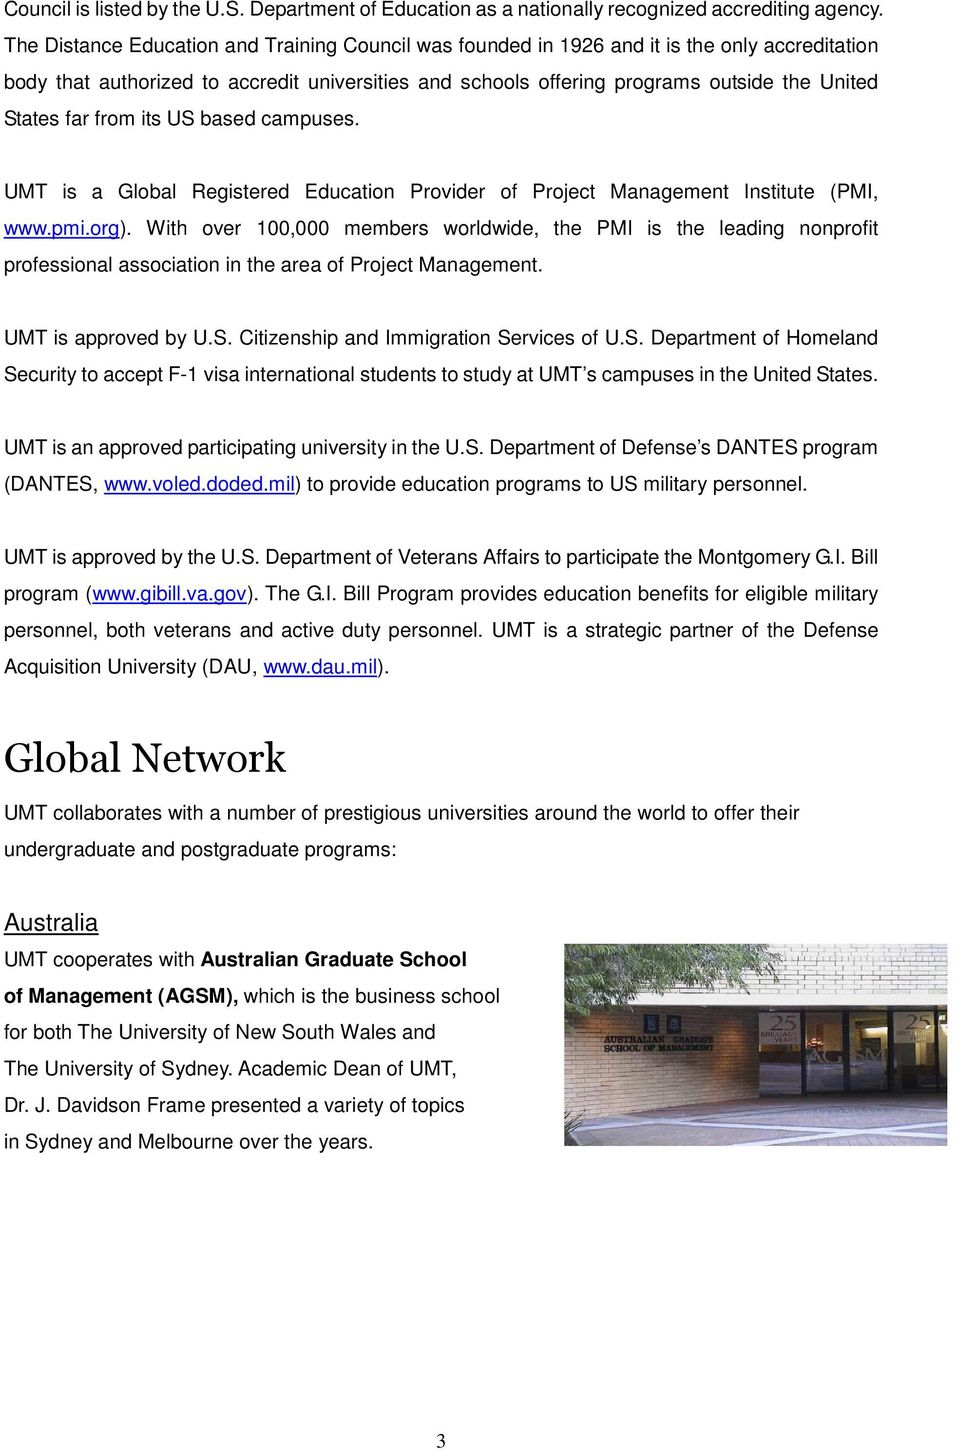 far from its US based campuses. UMT is a Global Registered Education Provider of Project Management Institute (PMI, www.pmi.org).